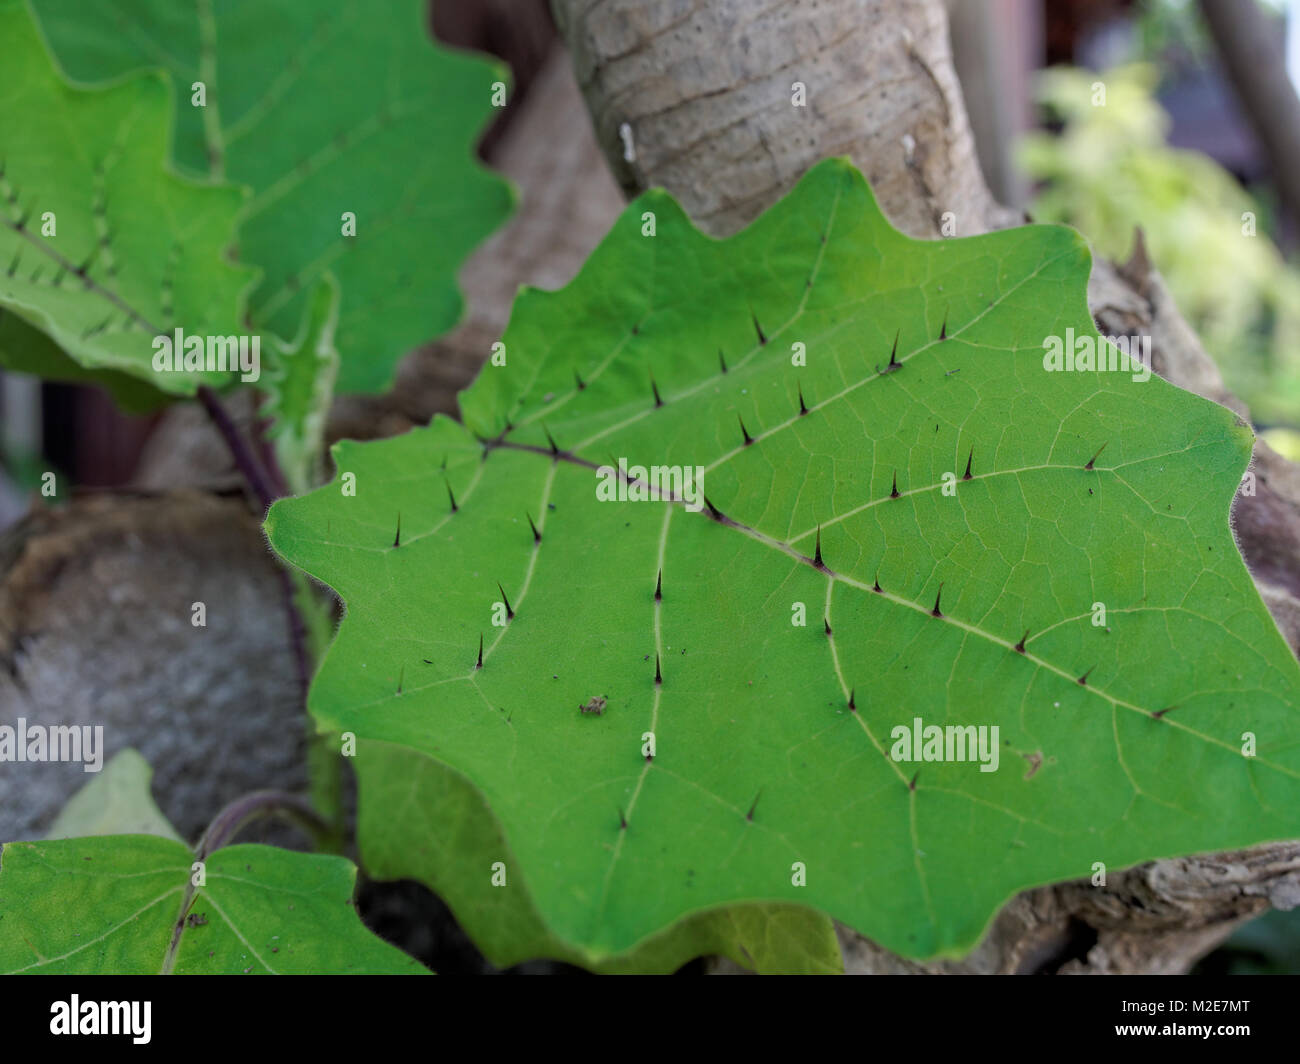 Sharp thron or prickle on Solanum leaf in close up with shallow depth of field - Stock Image